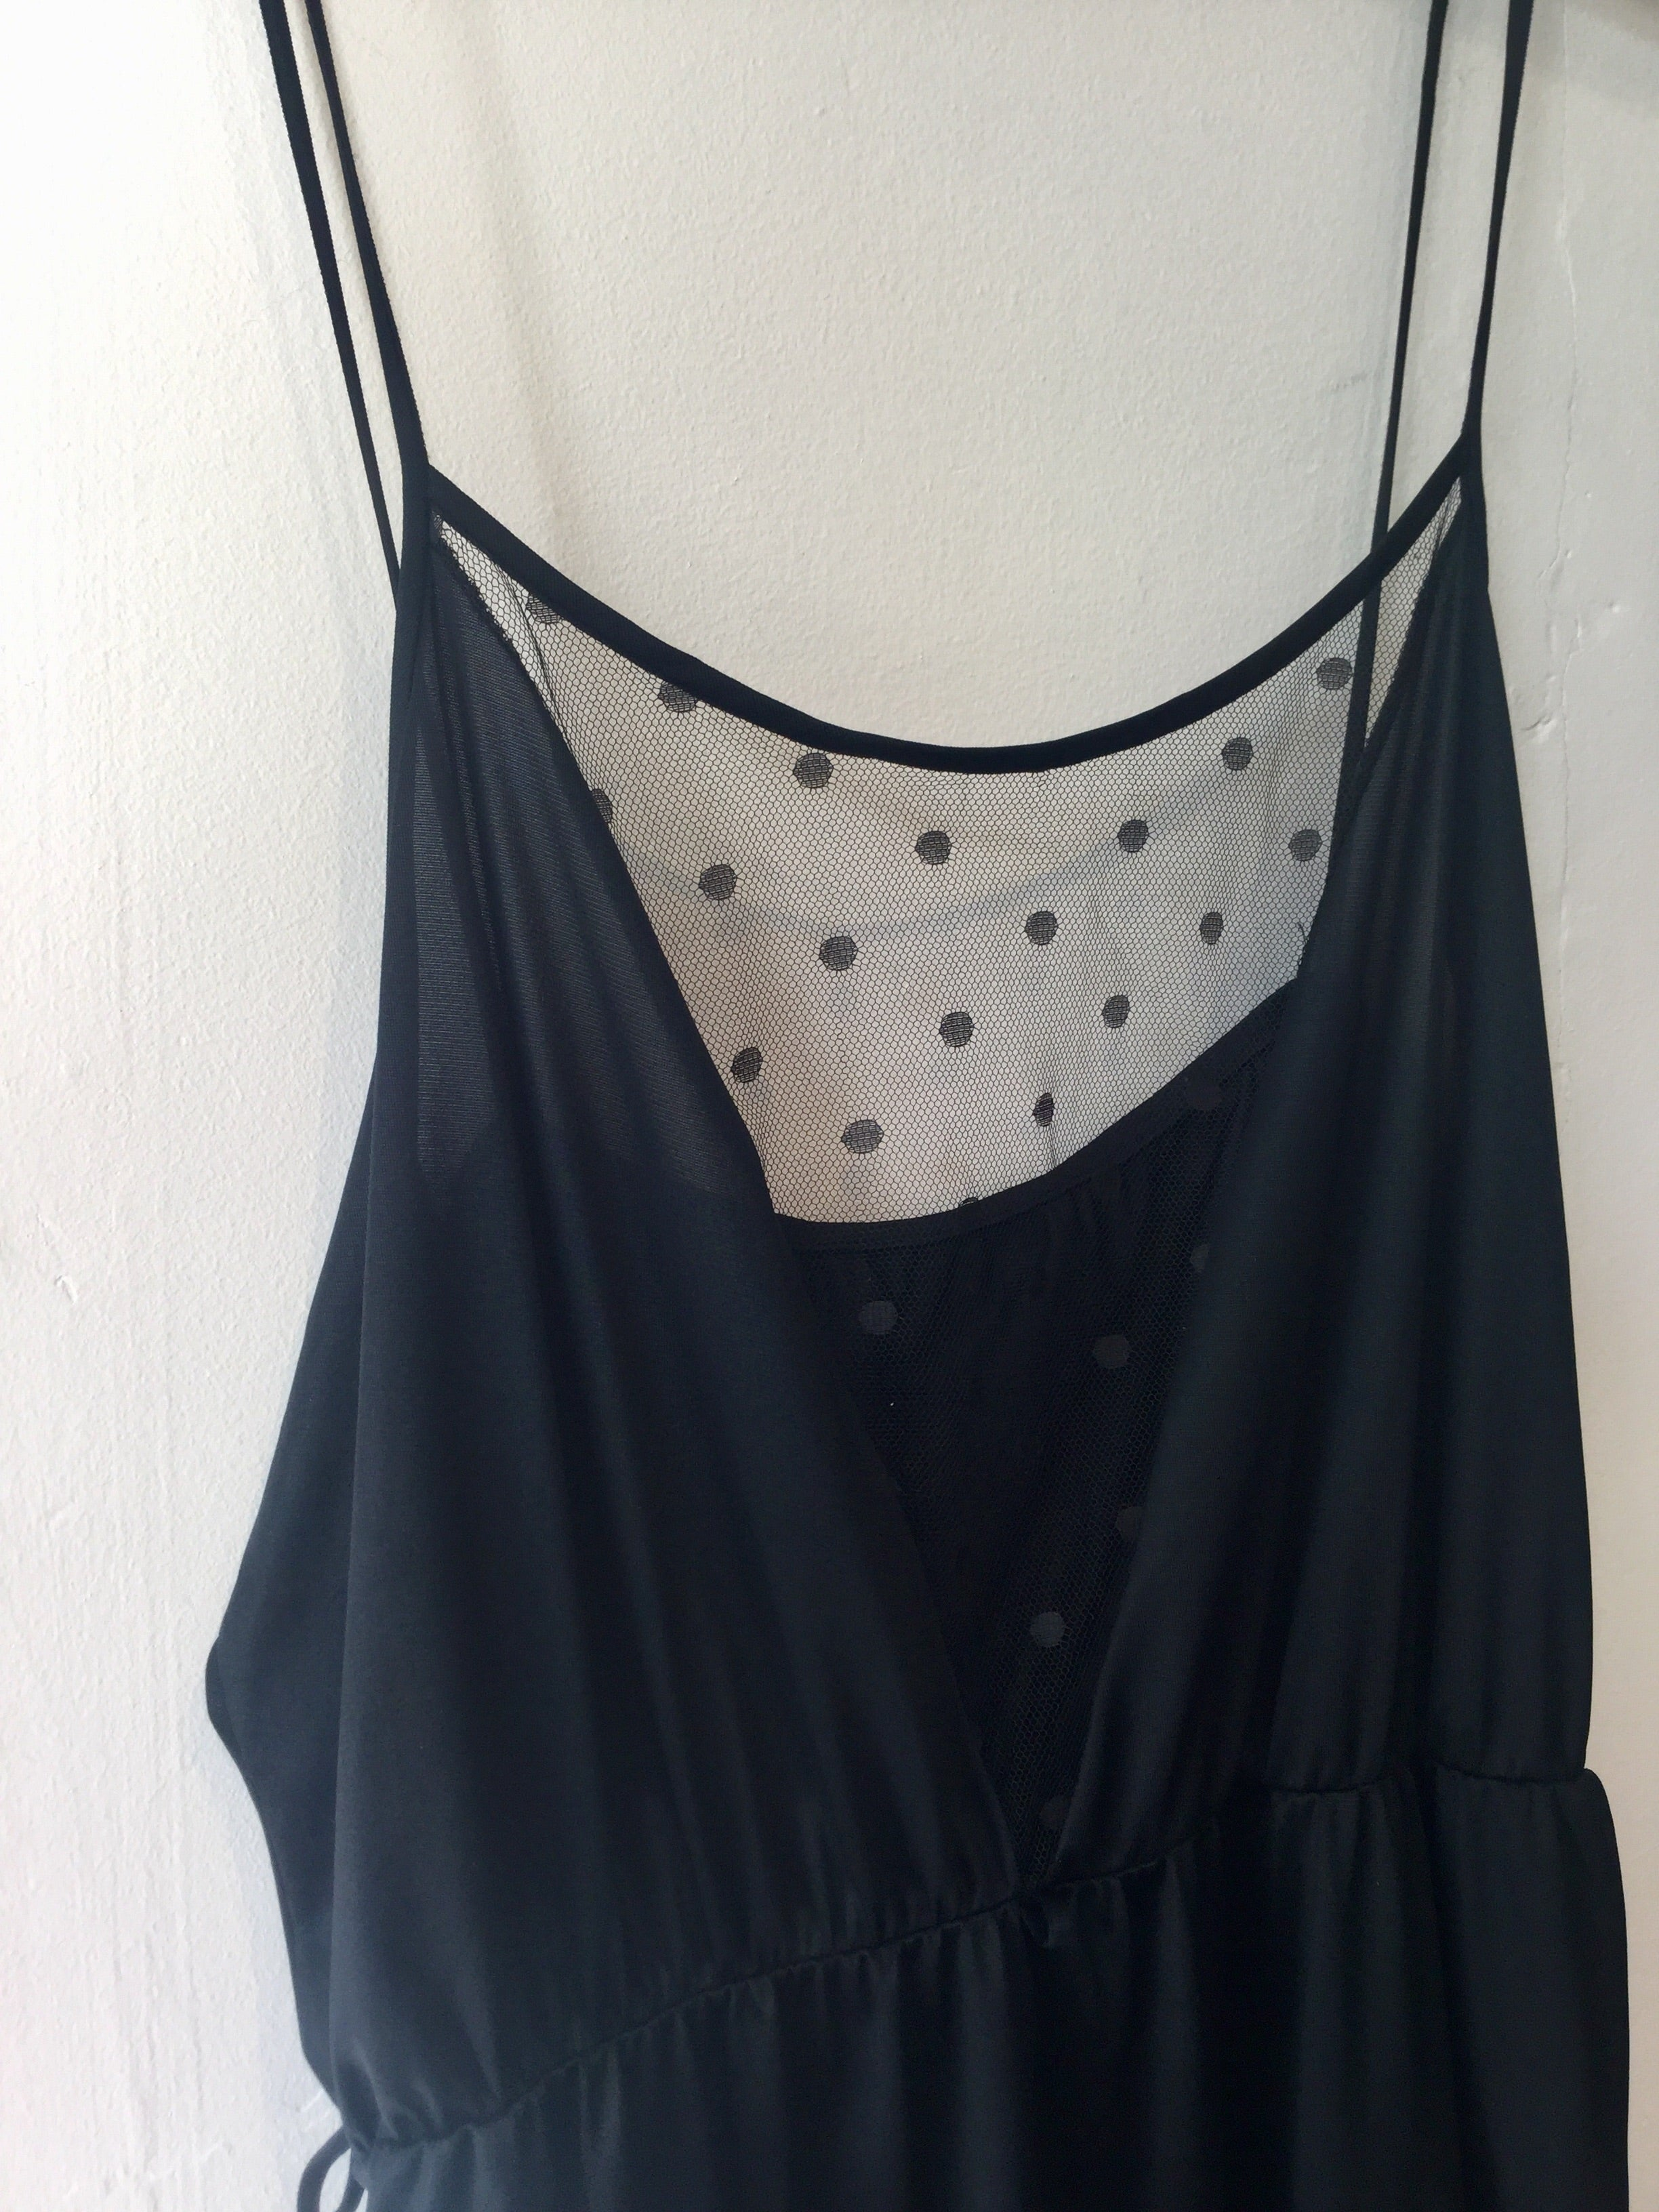 Polka Dot Tulle Nightdress L/XL+ #149